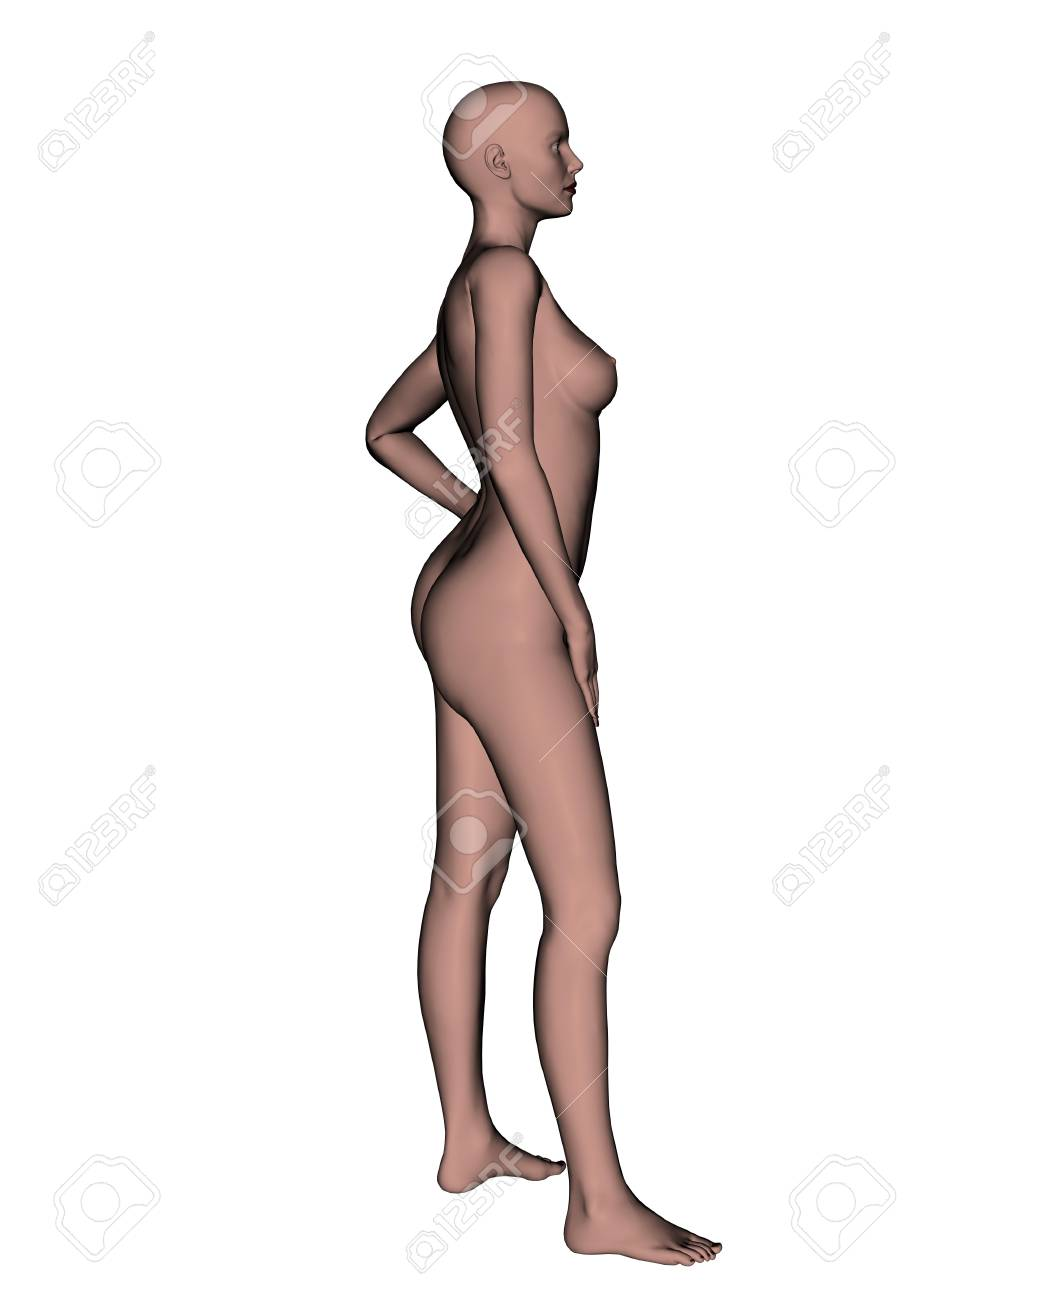 Side of a nude female in white background Stock Photo - 20847388